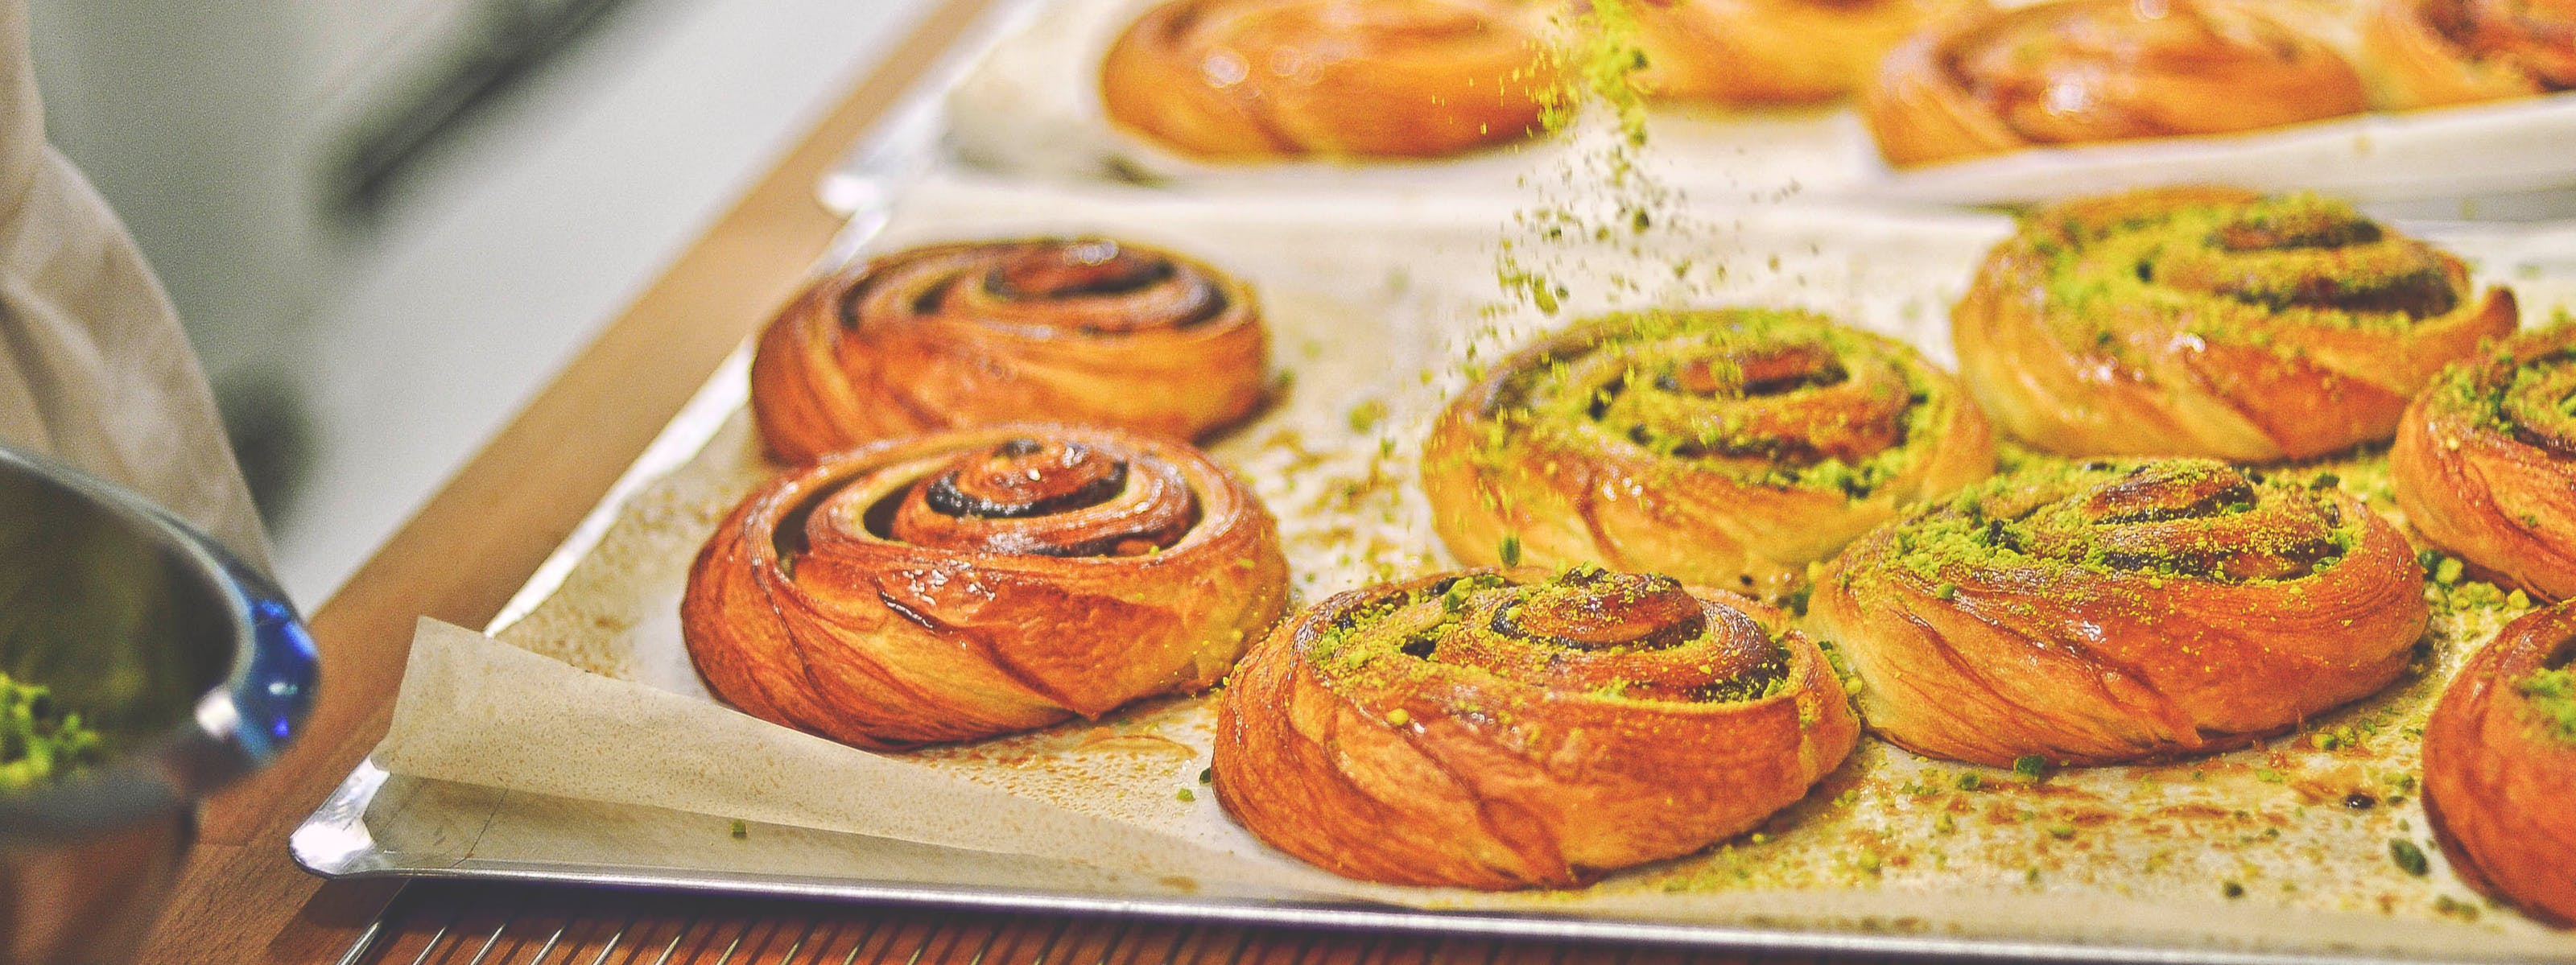 The Best New Bakeries In London - London - The Infatuation